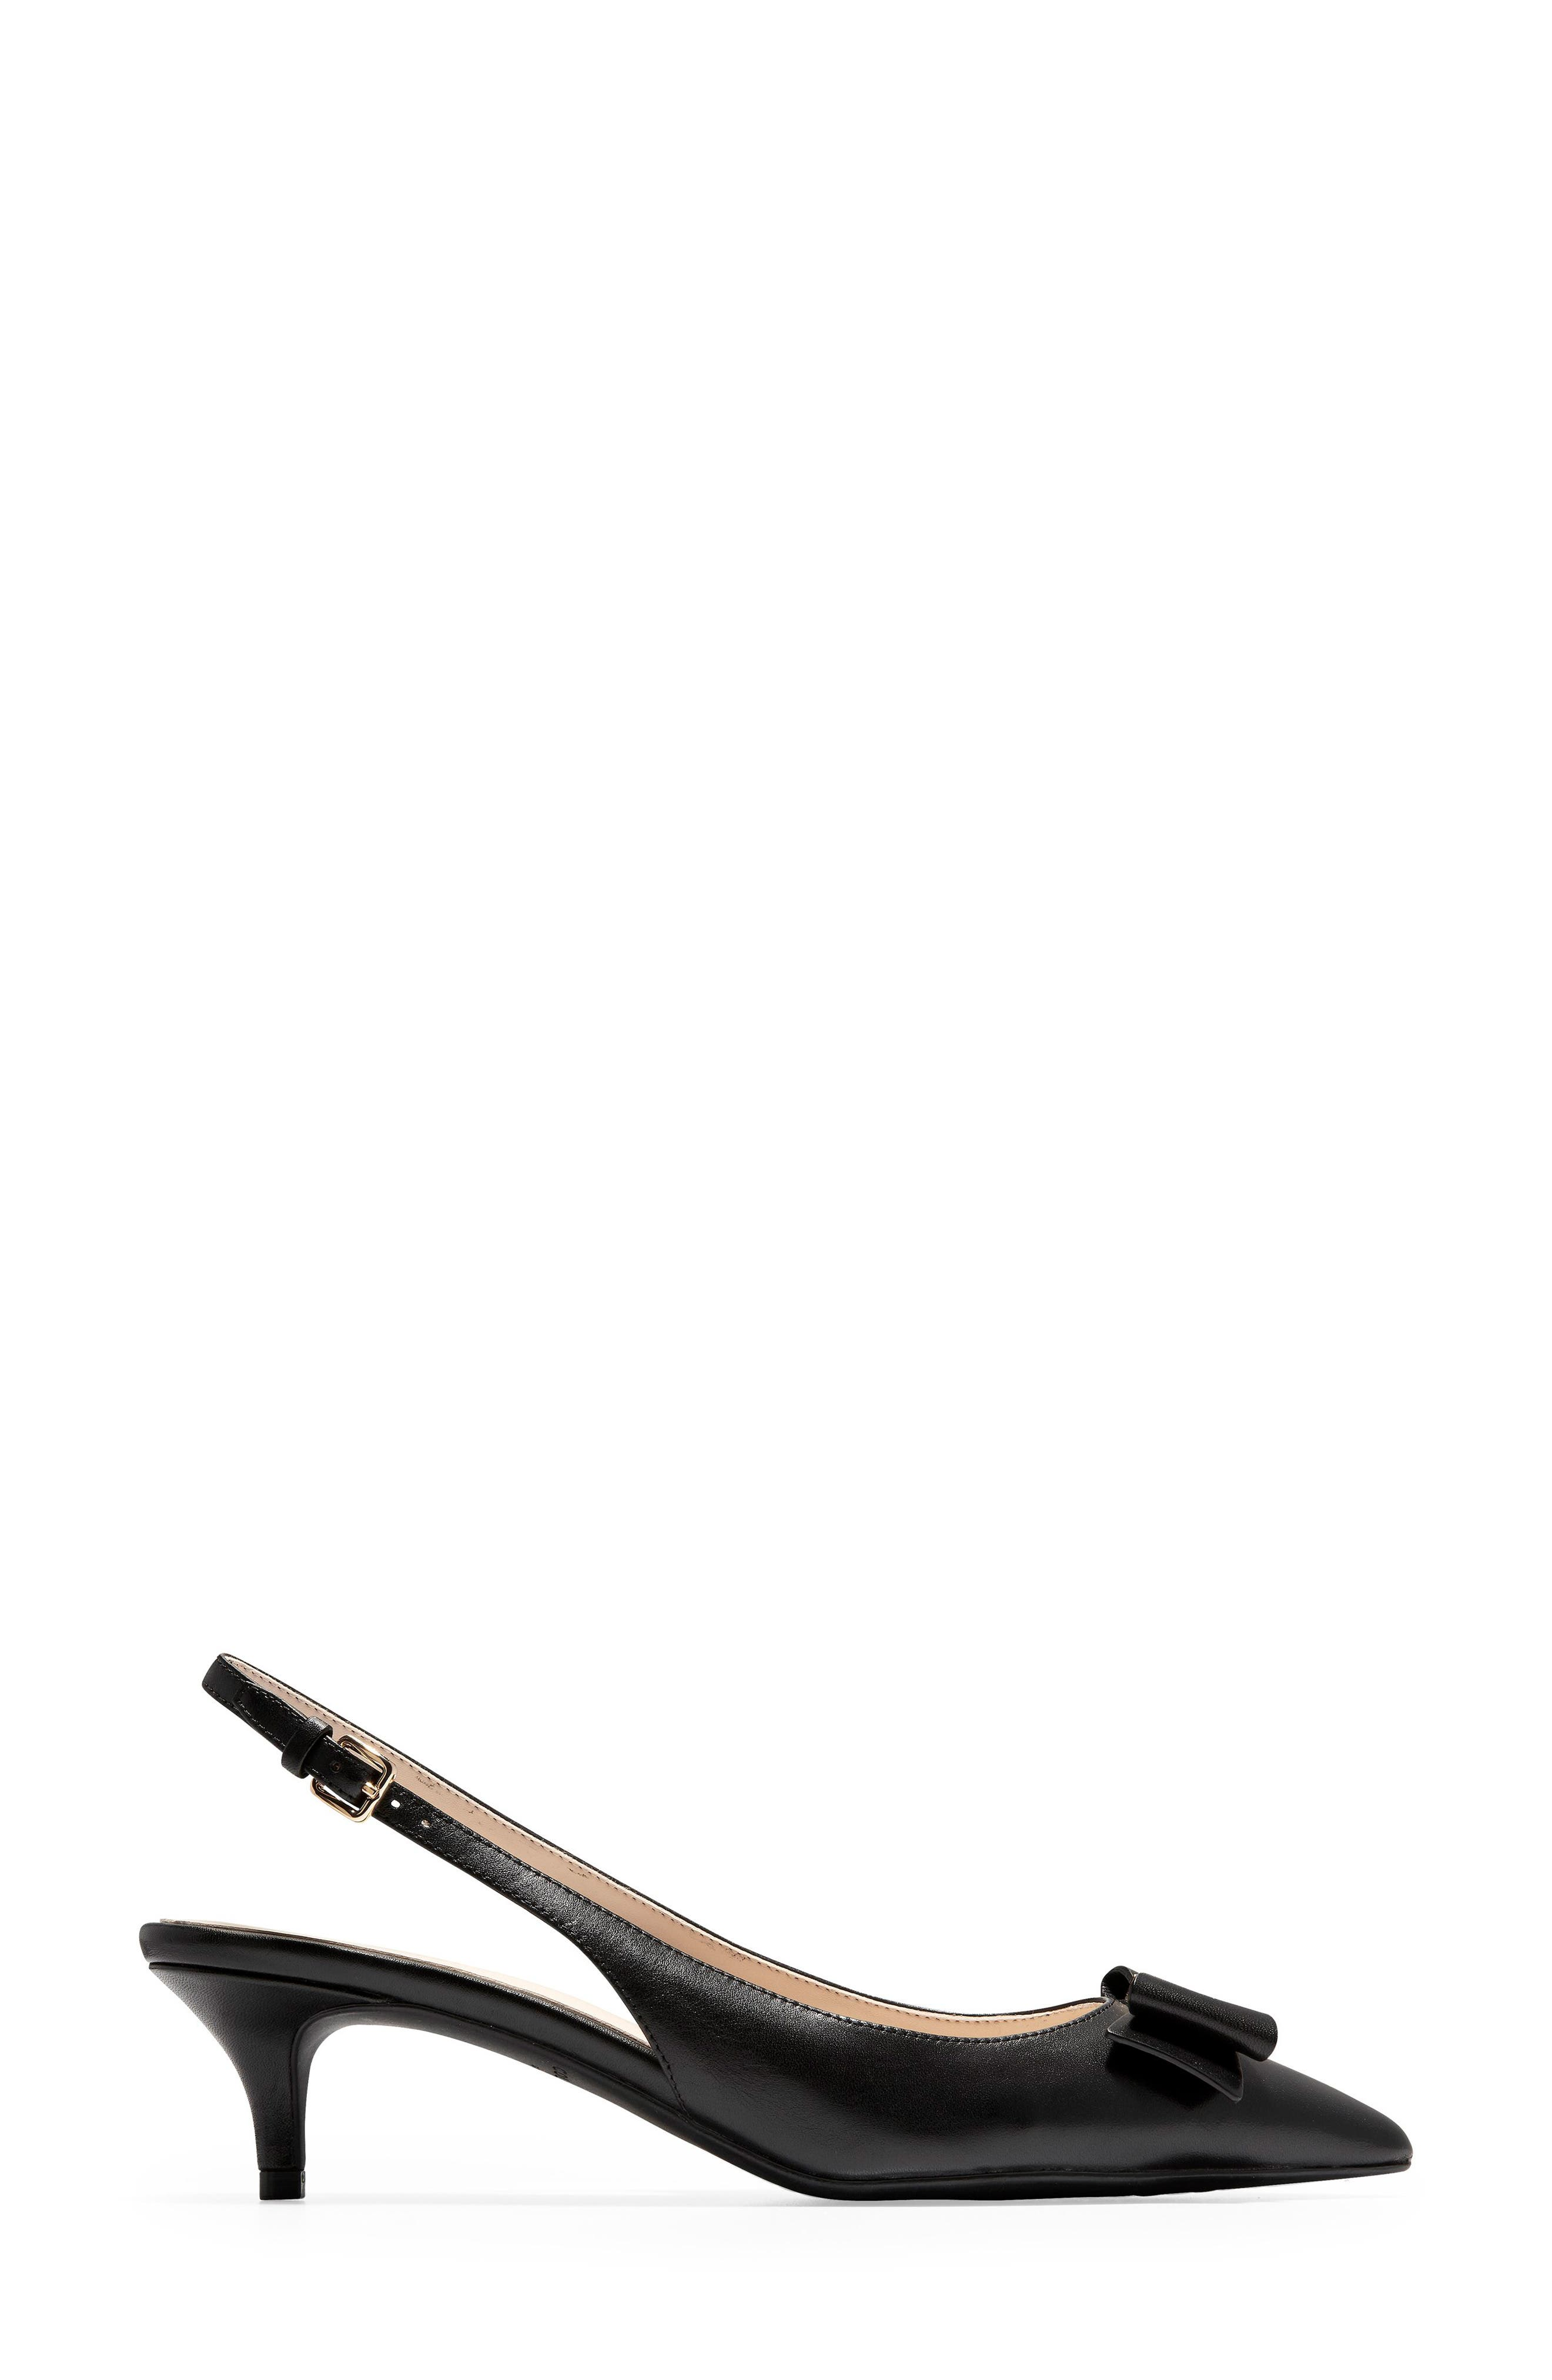 COLE HAAN,                             Tali Bow Slingback Pump,                             Alternate thumbnail 3, color,                             BLACK LEATHER